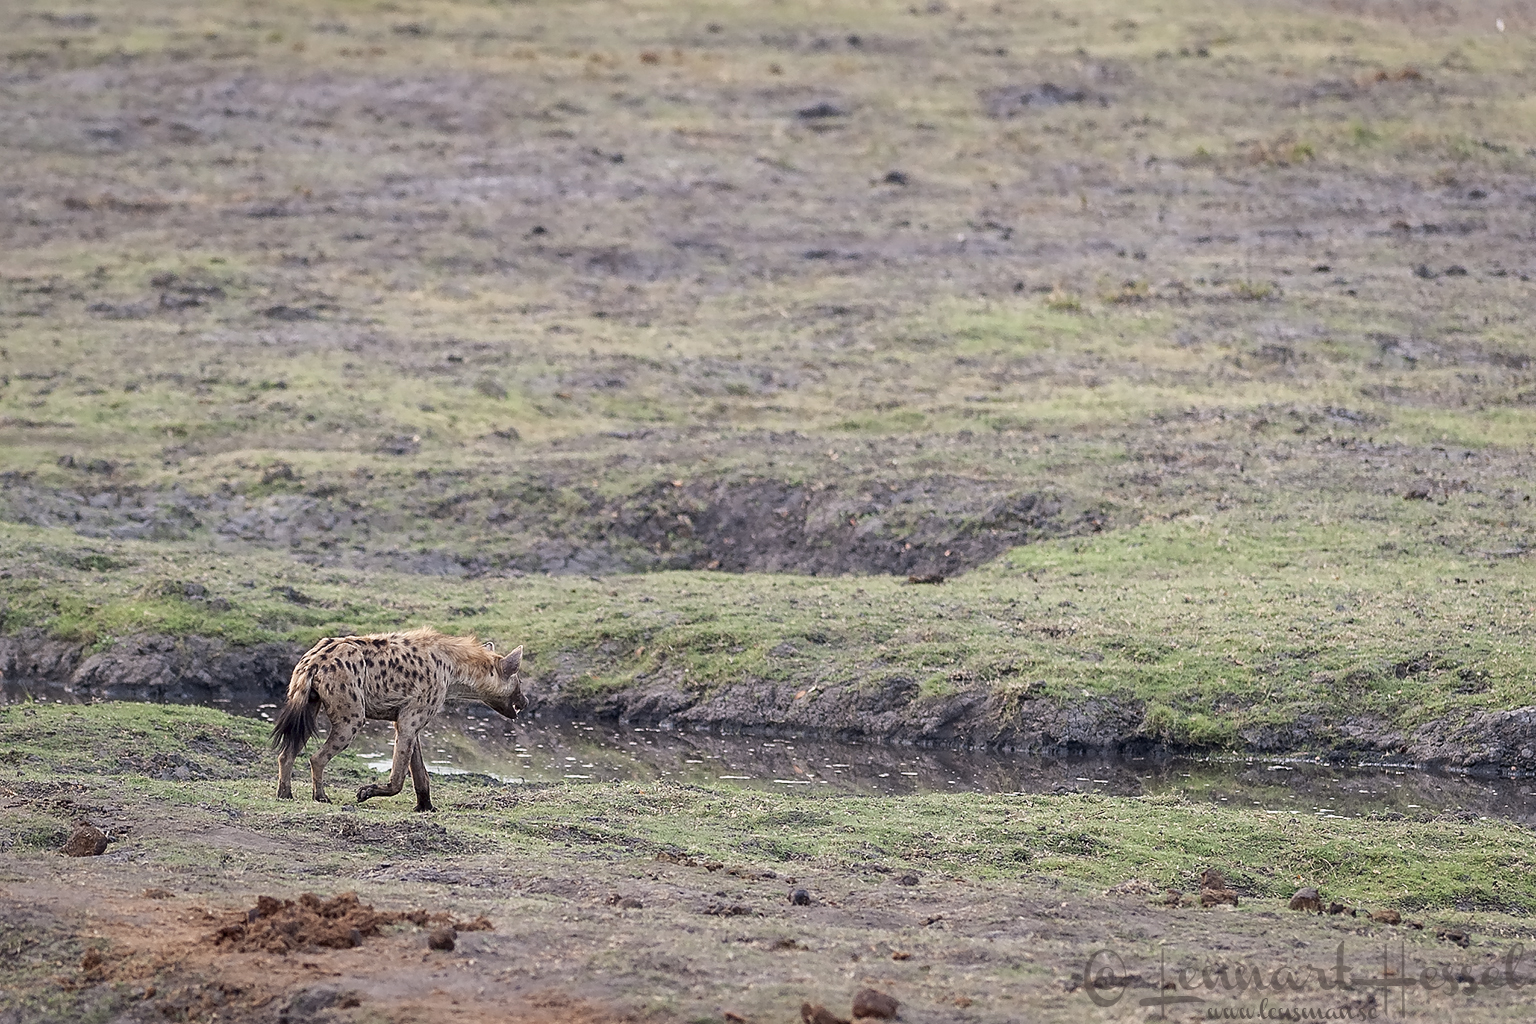 Spotted Hyena on the floodplain at the Chobe River front, Botswana